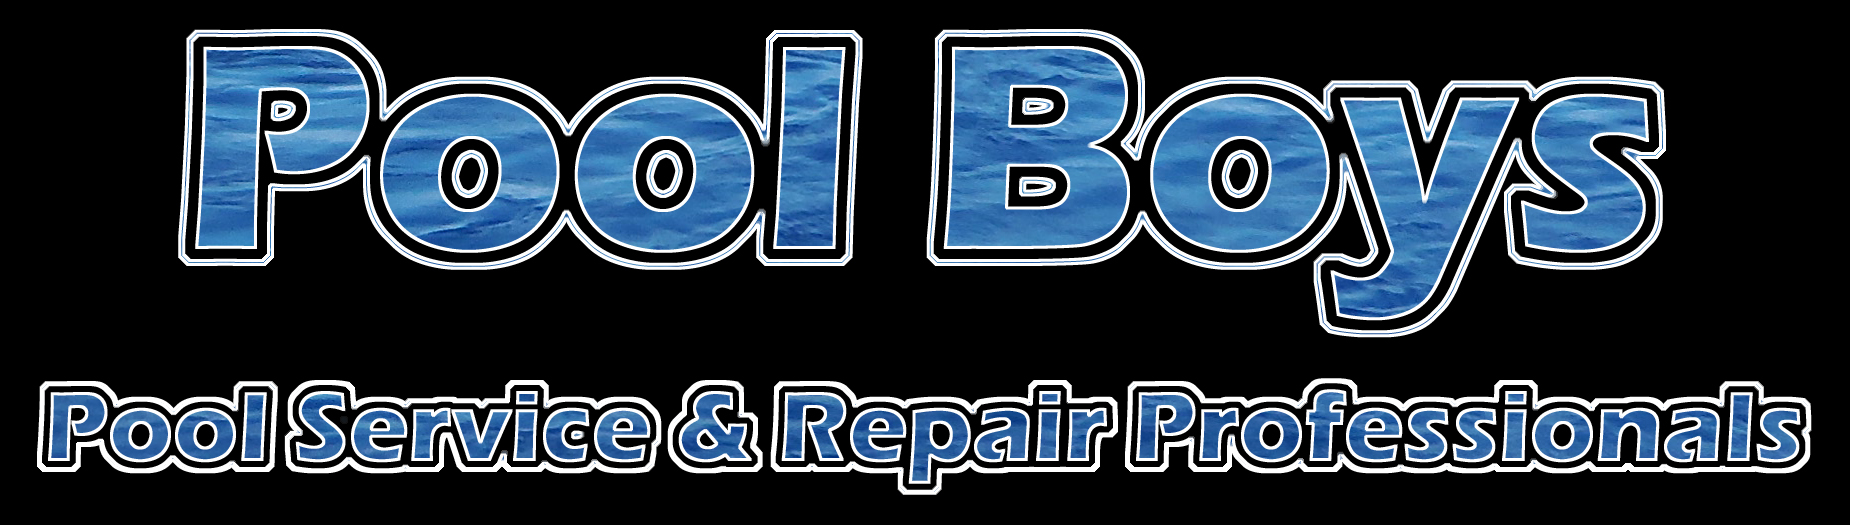 Pool Service & Repair Professionals